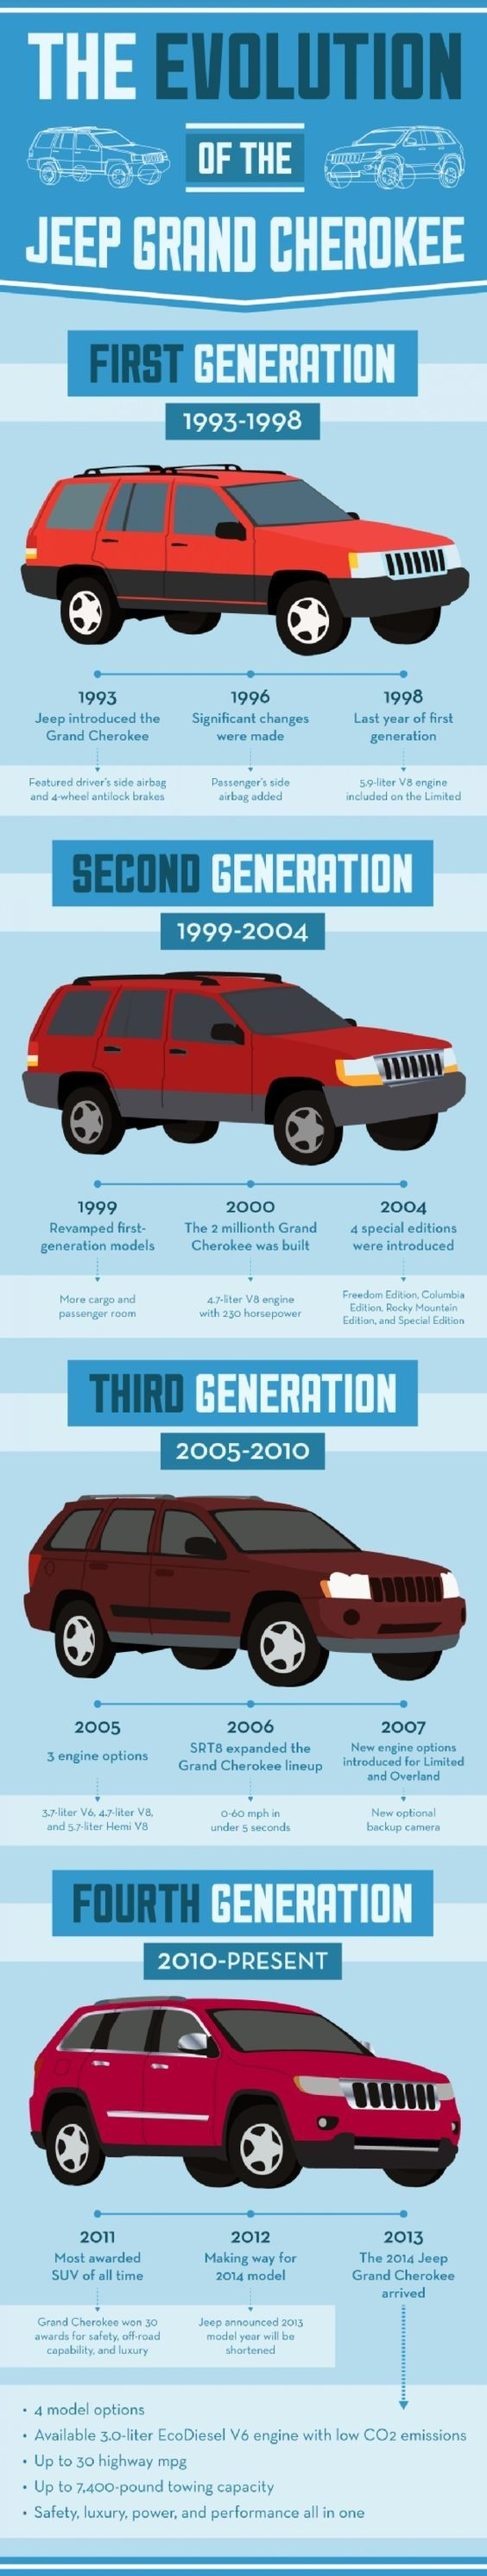 Check Out the #Evolution of the #Jeep #Grand #Cherokee! #Infographic